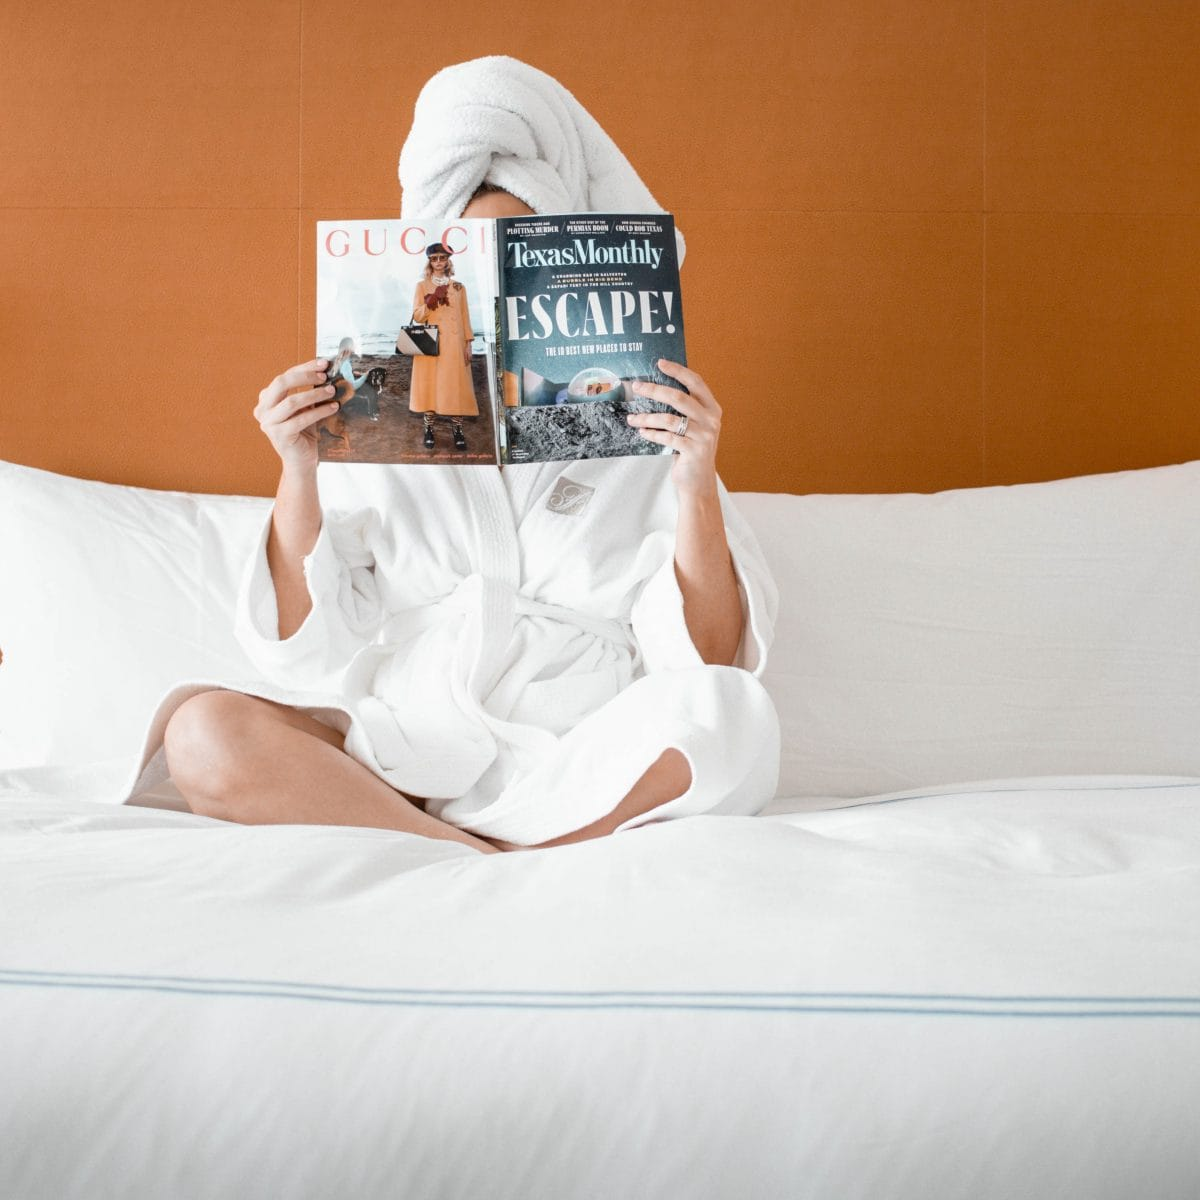 Houston lifestyle blogger Meg O. on the Go shares her couples' getaway to the Fairmont Austin TX - hotel accommodations